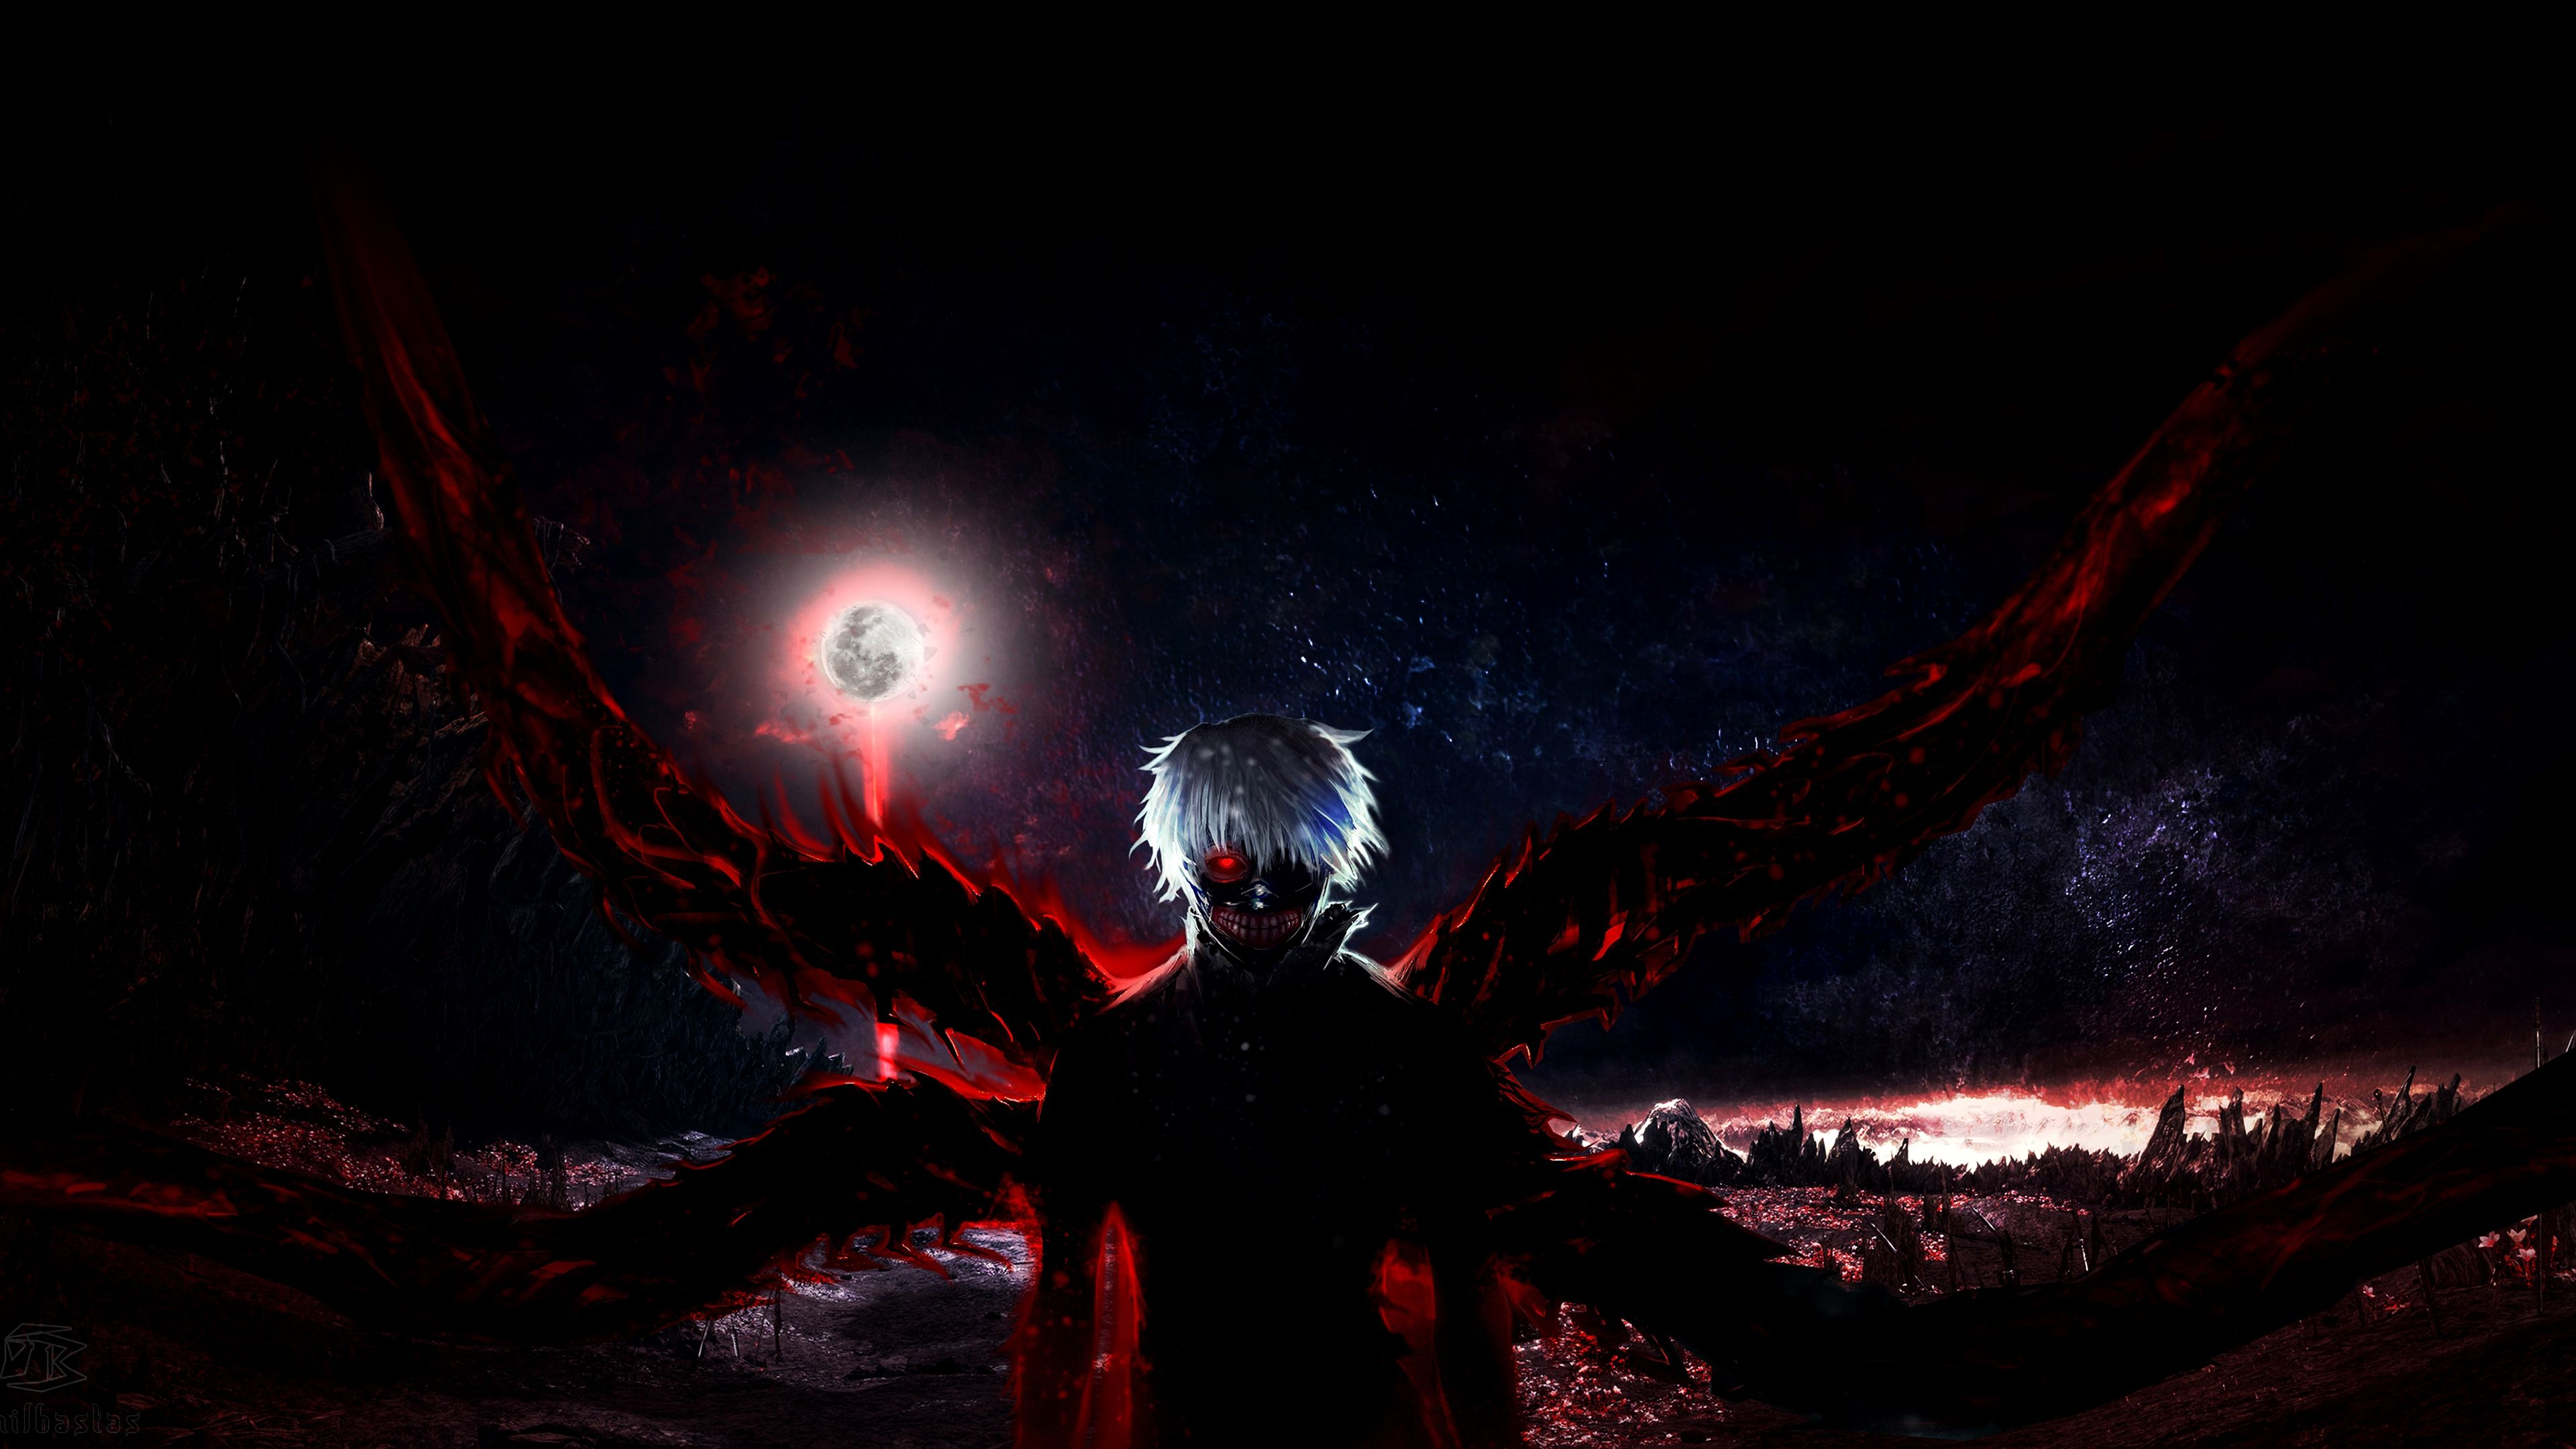 Tokyo Ghoul Wallpaper 4K Iphone Ideas Check more at https